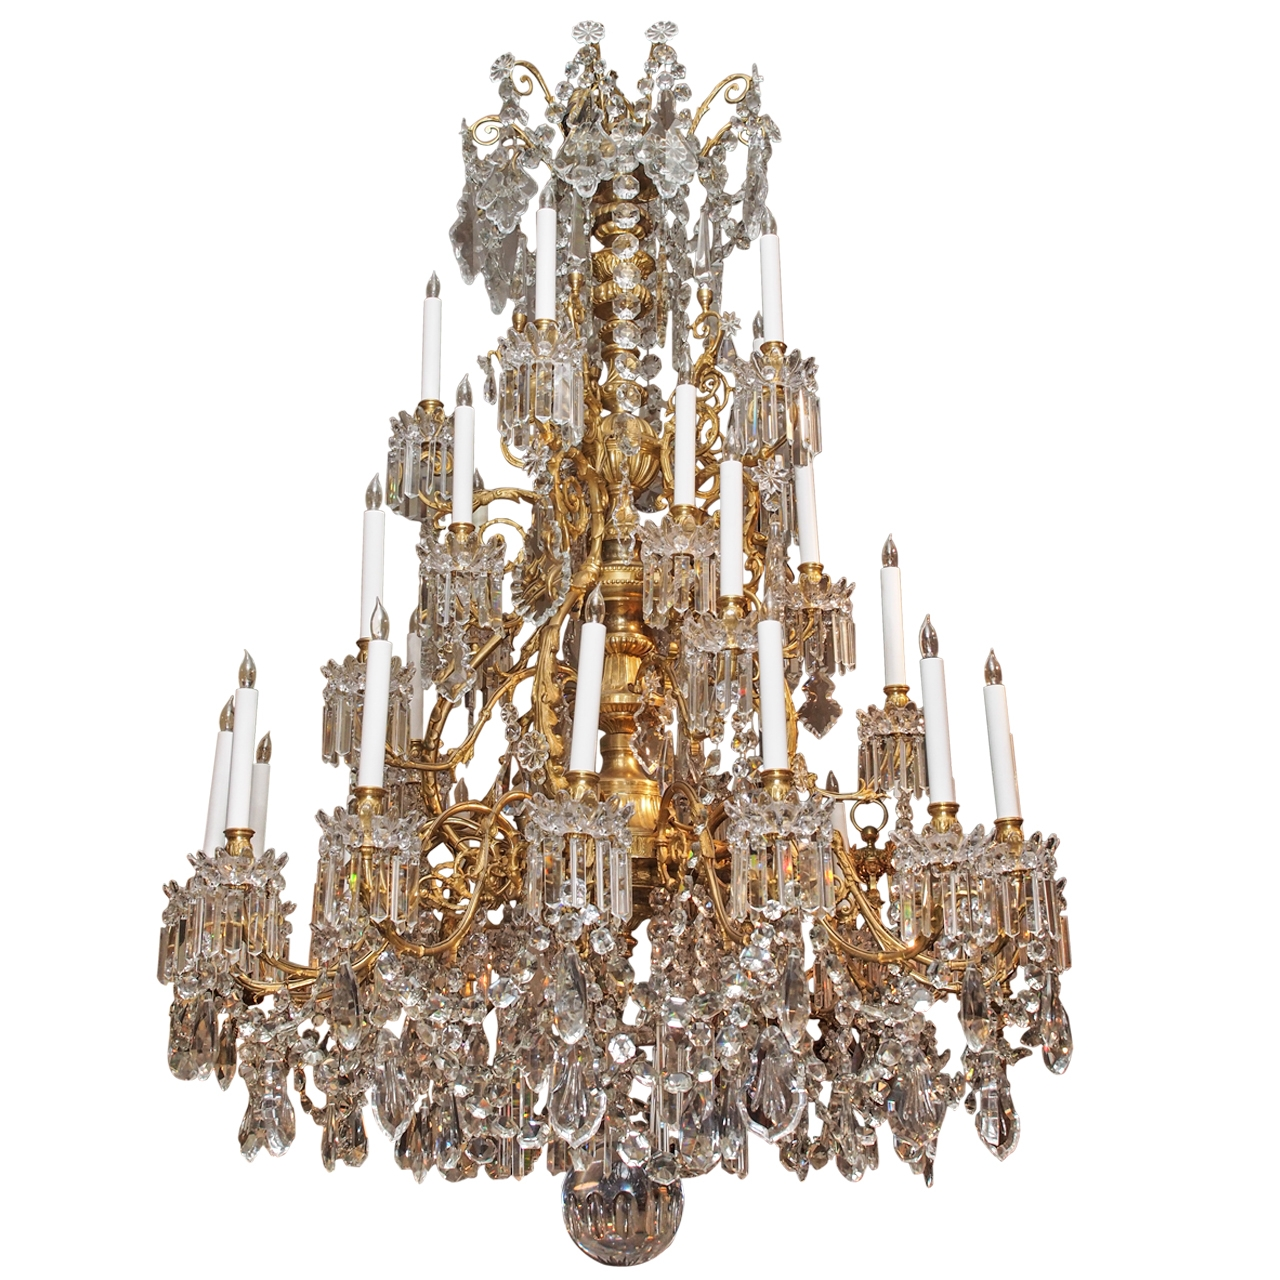 Magnificent Antique French Baccarat Crystal Chandelier Circa 1850 Regarding Antique French Chandeliers (Image 14 of 15)